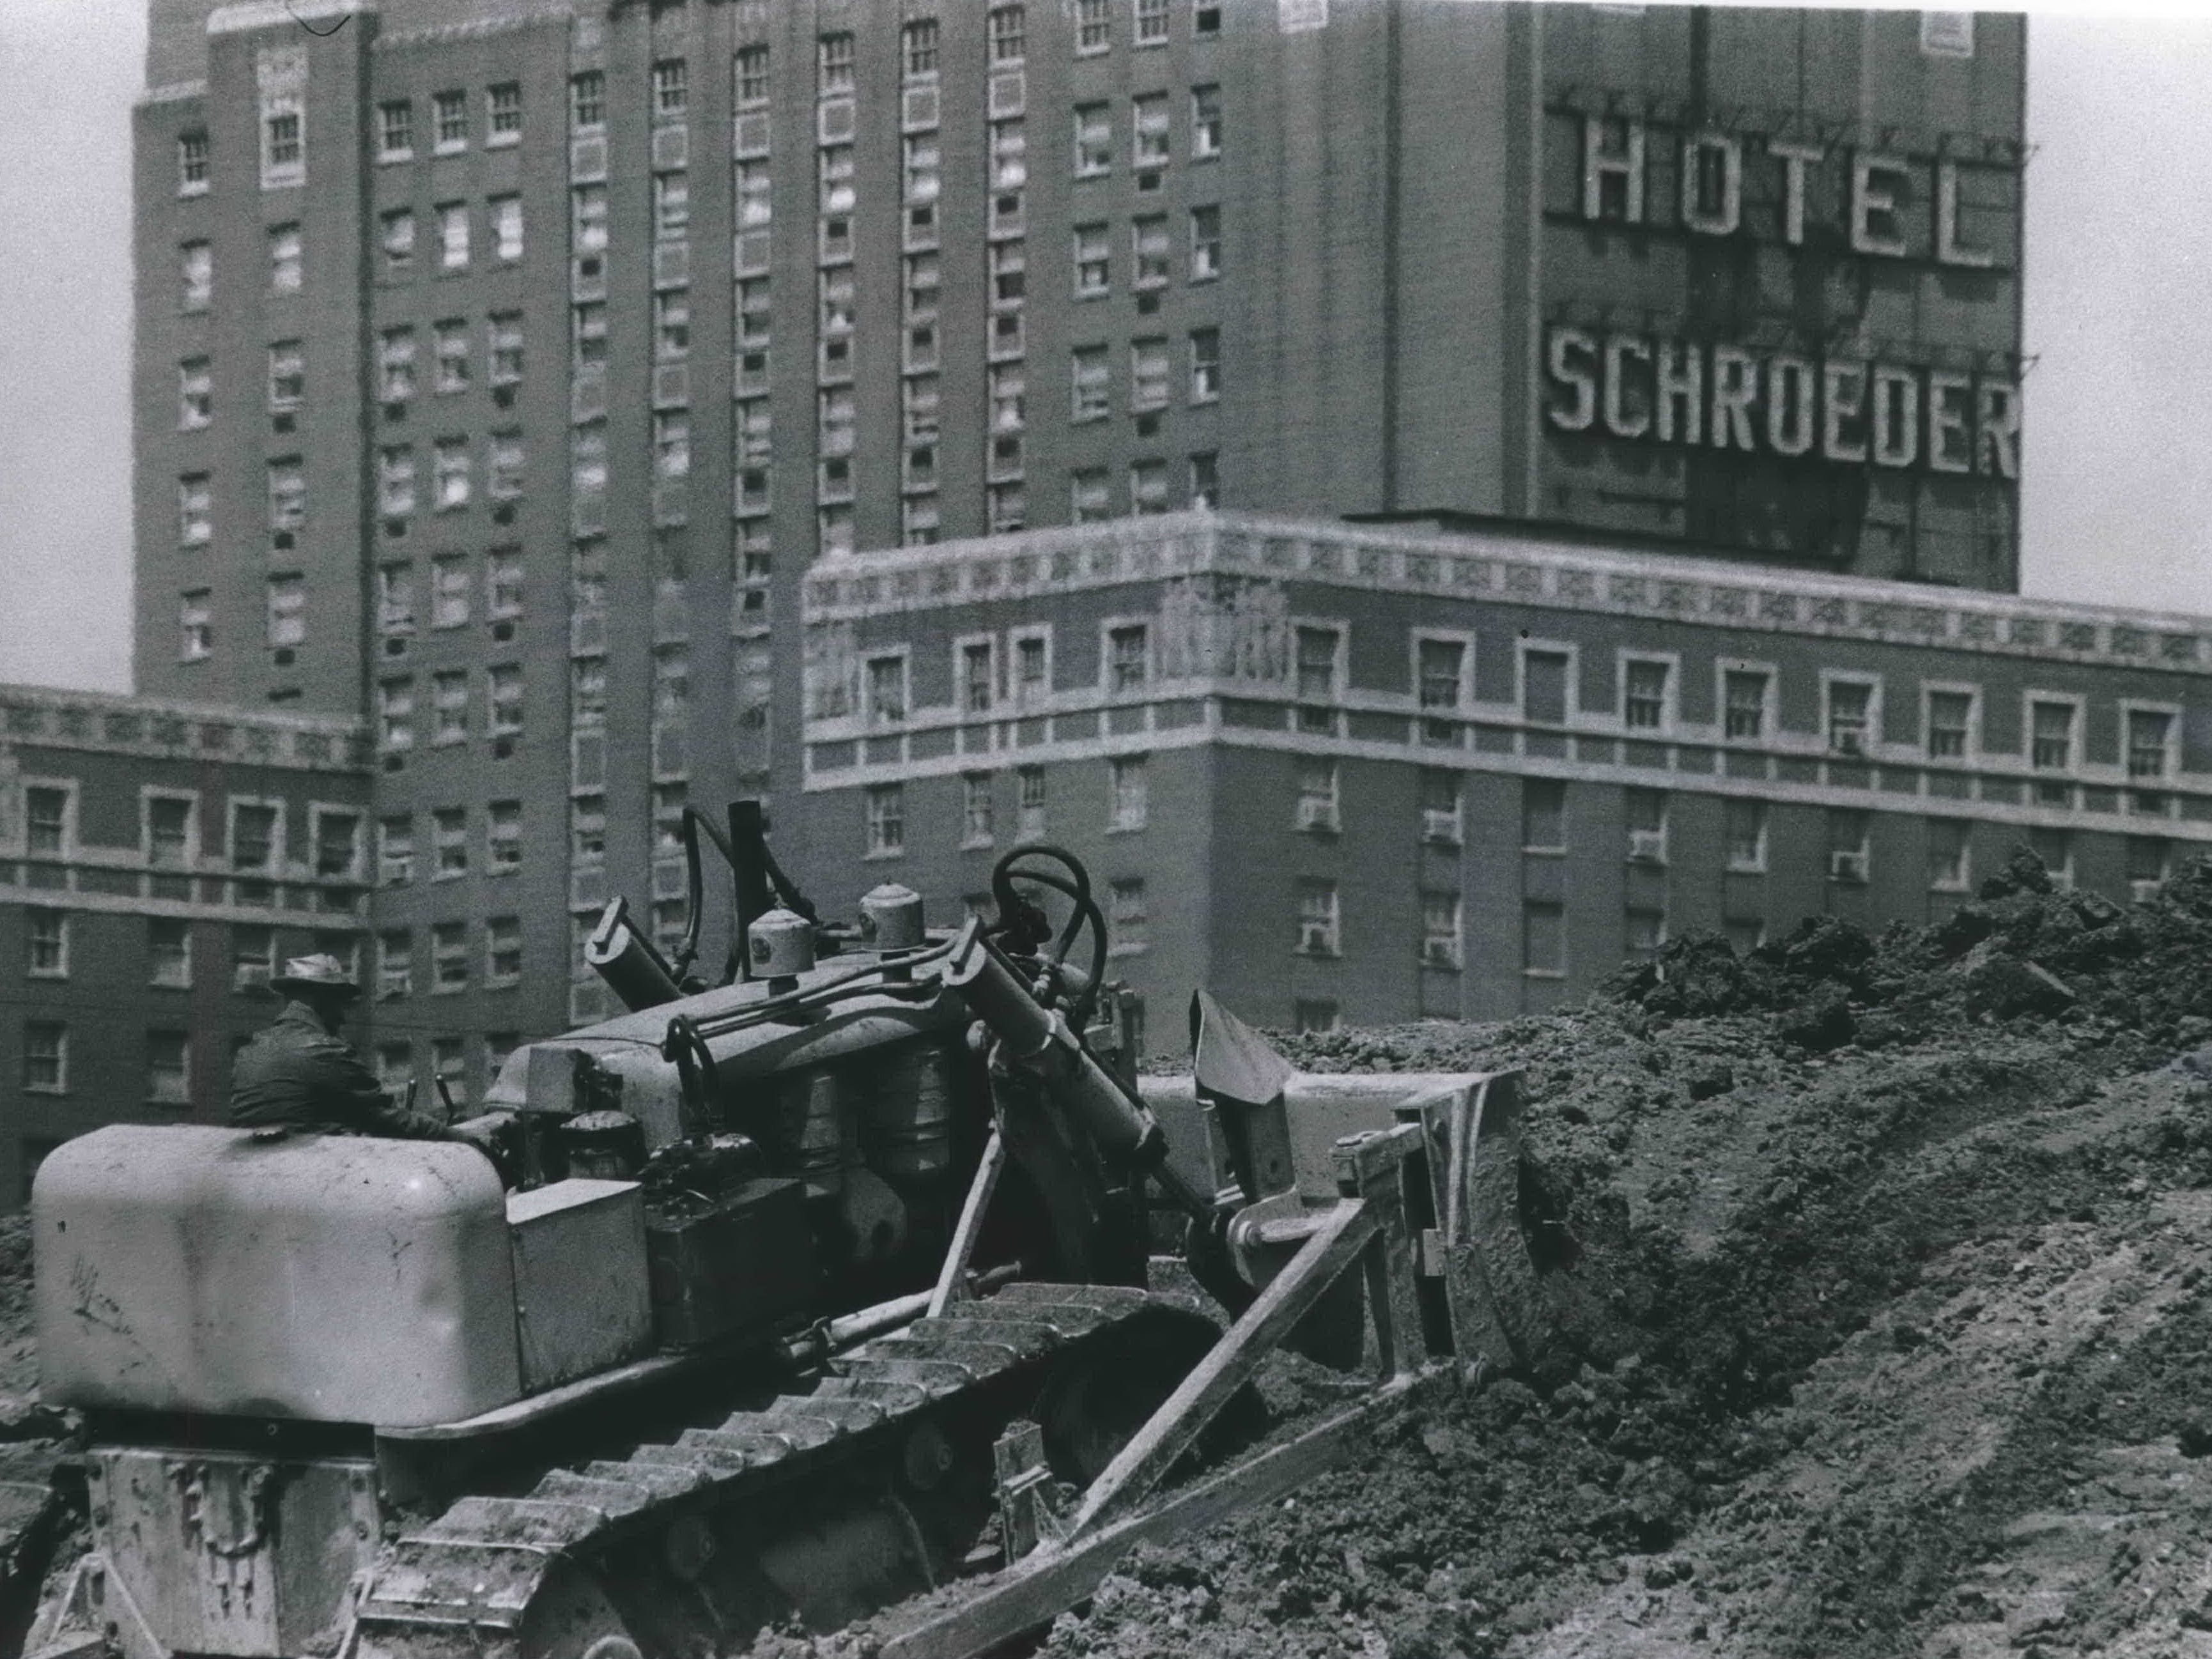 A bulldozer pushed dirt at N. Eighth Street and W. St. Paul Avenue, clearing the way for the southern end of the Central Interchange in downtown Milwaukee. The scene was distorted by using a telephoto lens, which makes the Hotel Schroeder (now the Milwaukee Hilton City Center, 509 W. Wisconsin Ave.) appear closer than it really was. This photo was published in the June 4, 1964, Milwaukee Journal.